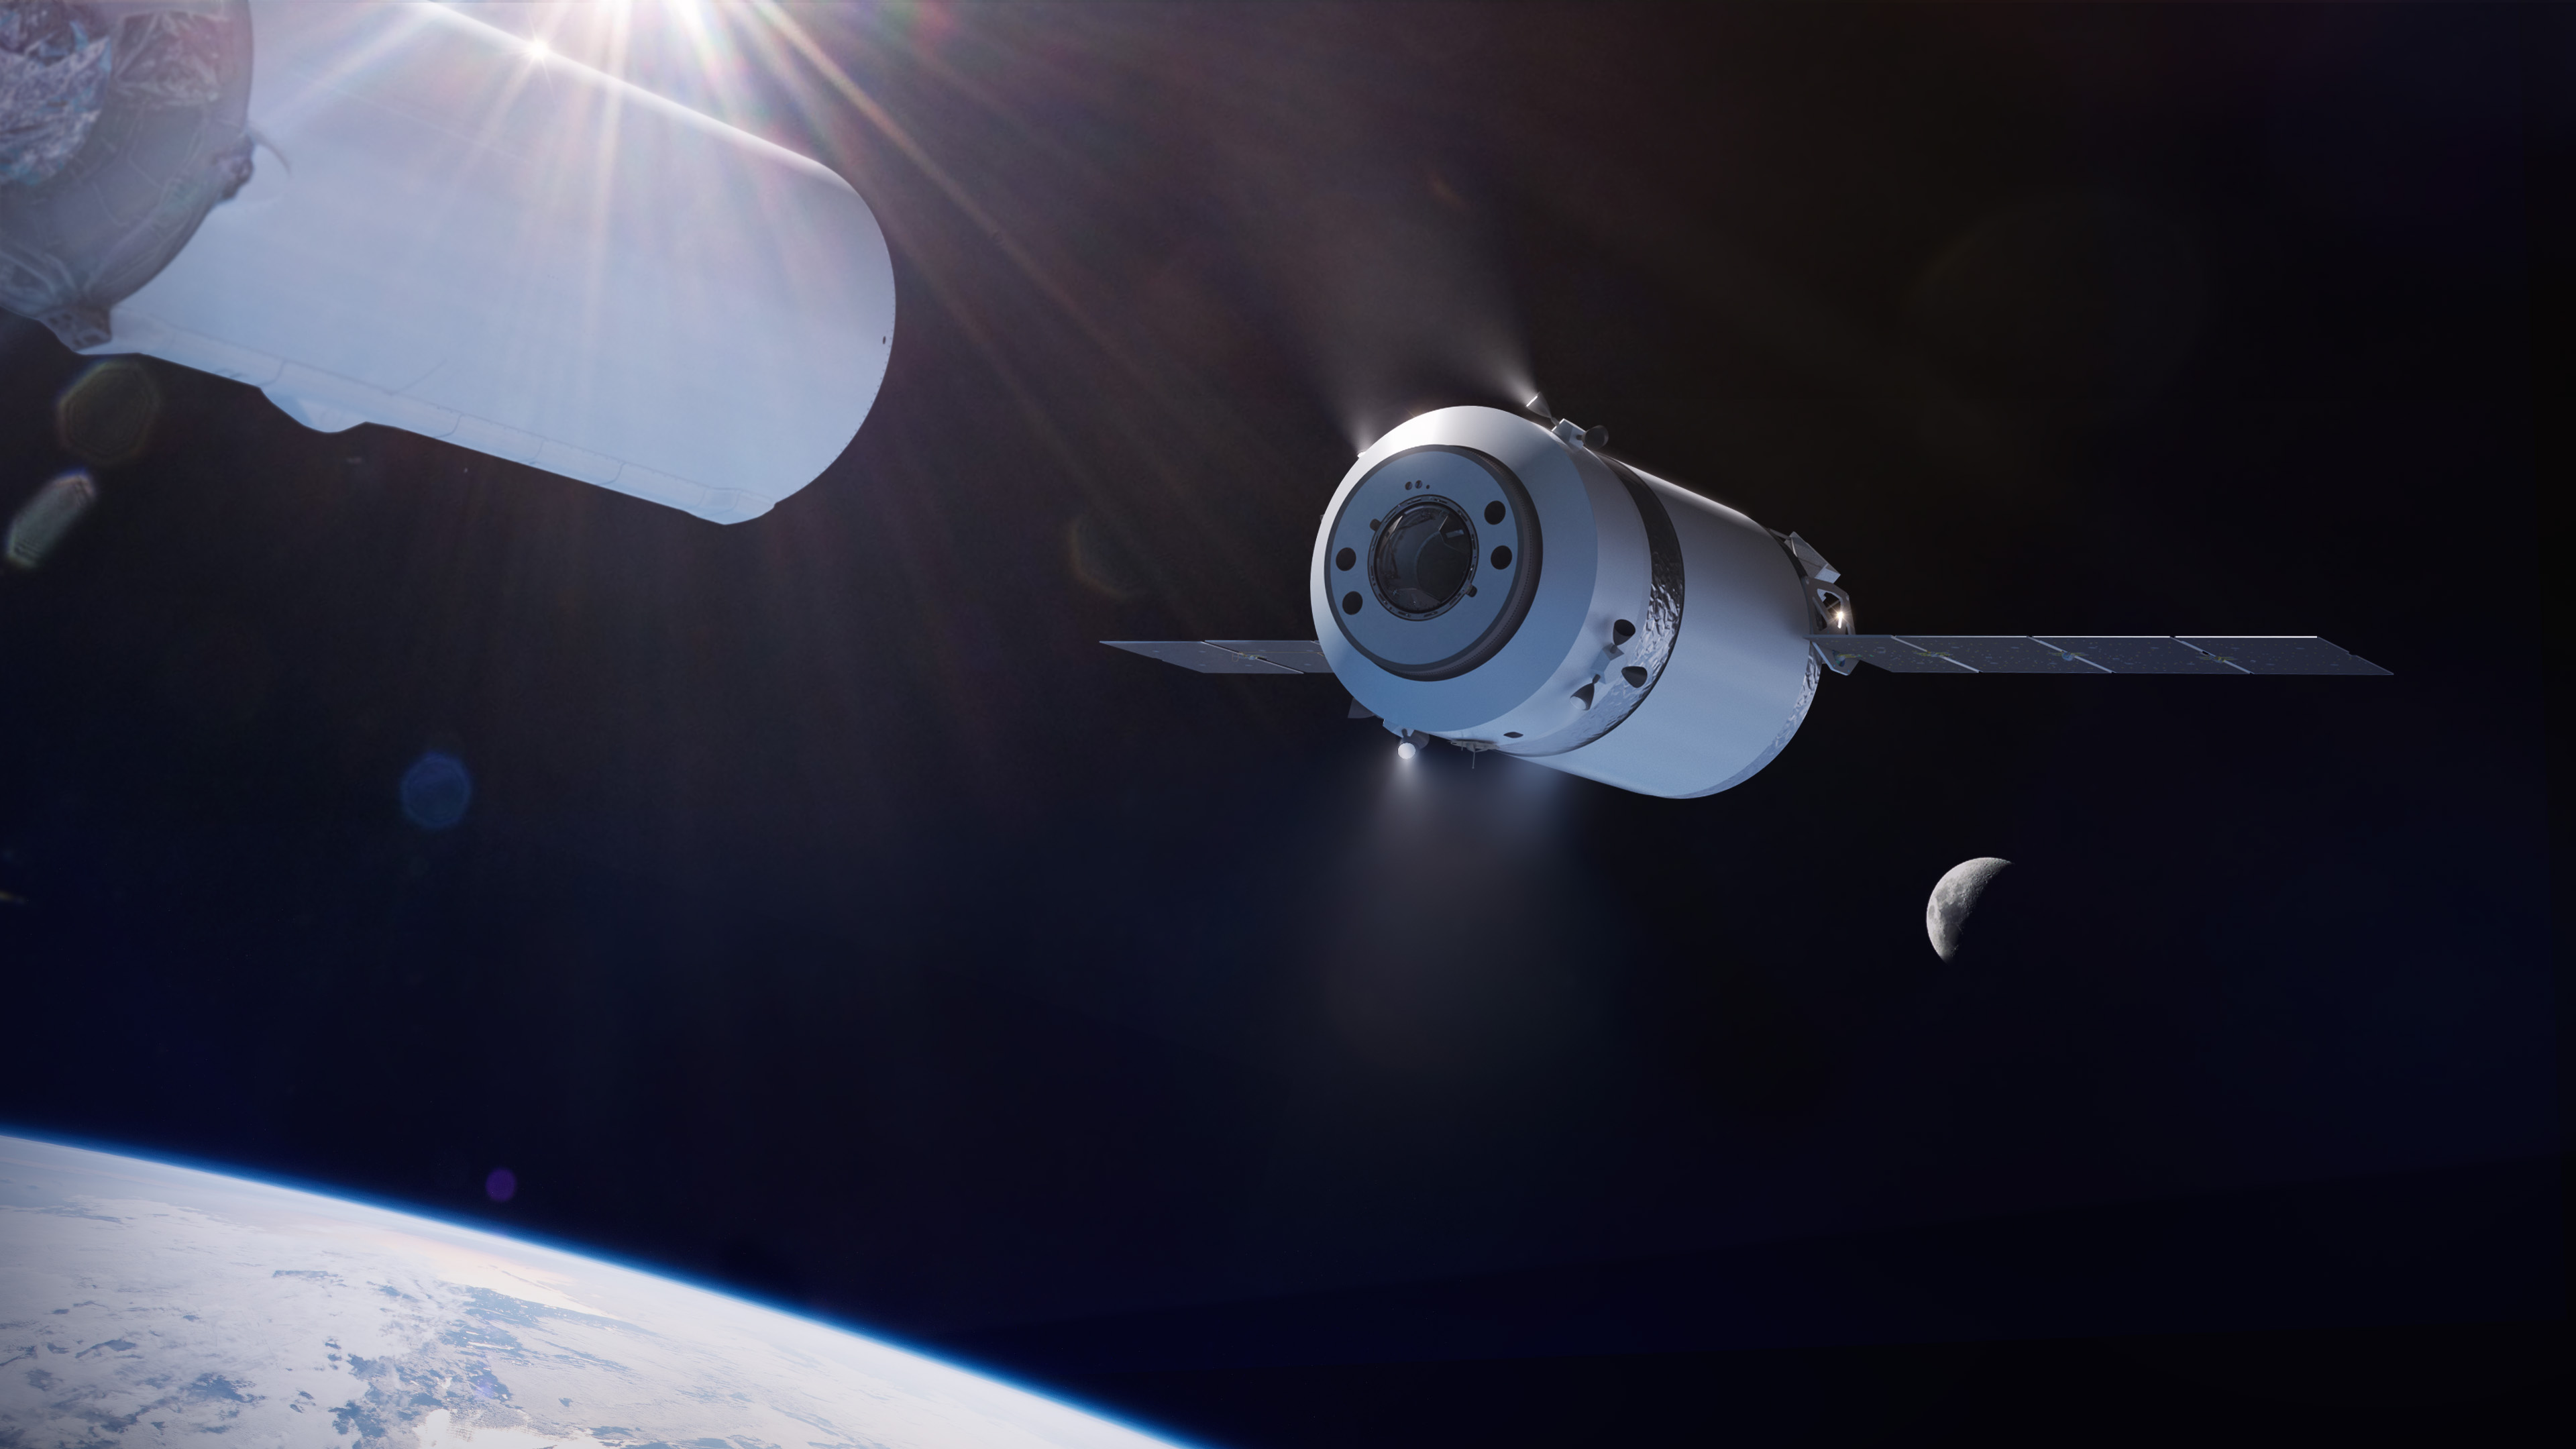 Illustration of the SpaceX Dragon XL as it is deployed from the Falcon Heavy's second stage in high Earth orbit on its way to the Gateway in lunar orbit.